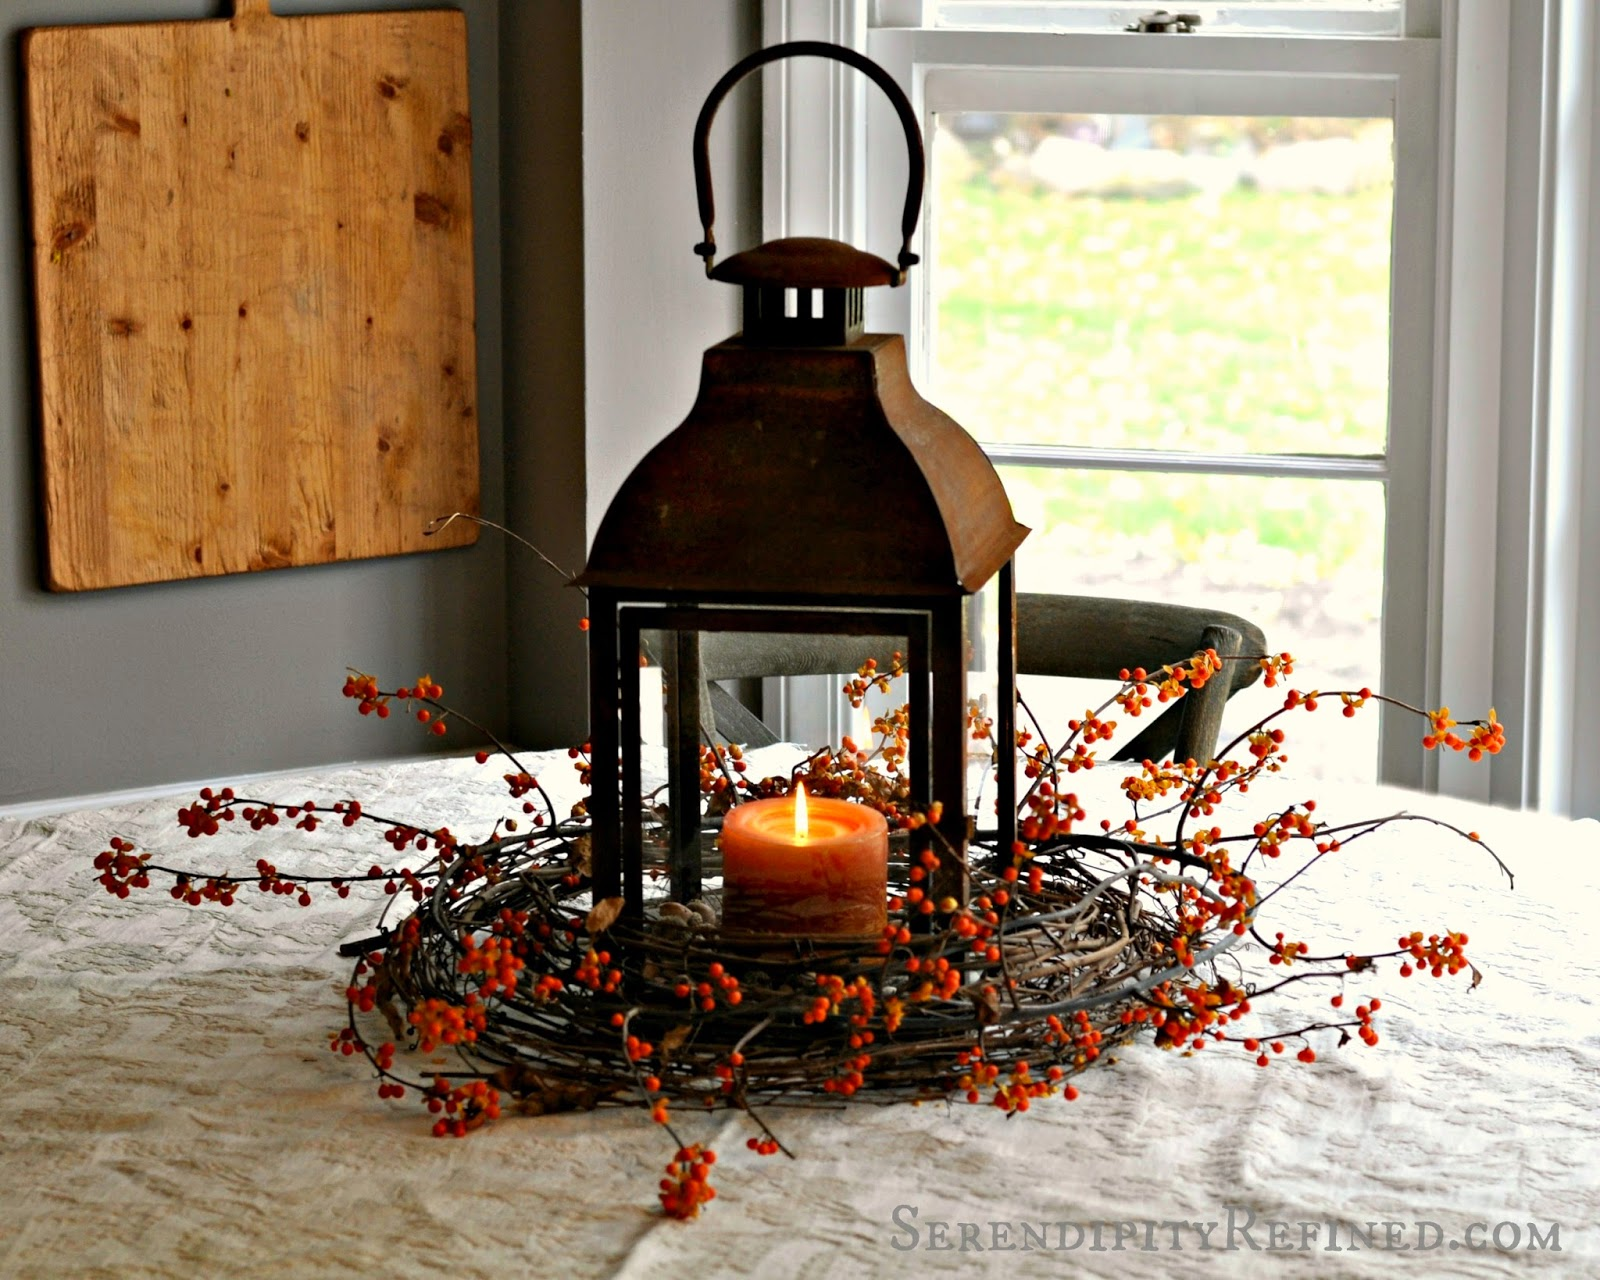 Serendipity Refined Blog: Rusty Lantern And Bittersweet Simple Fall Table Centerpiece